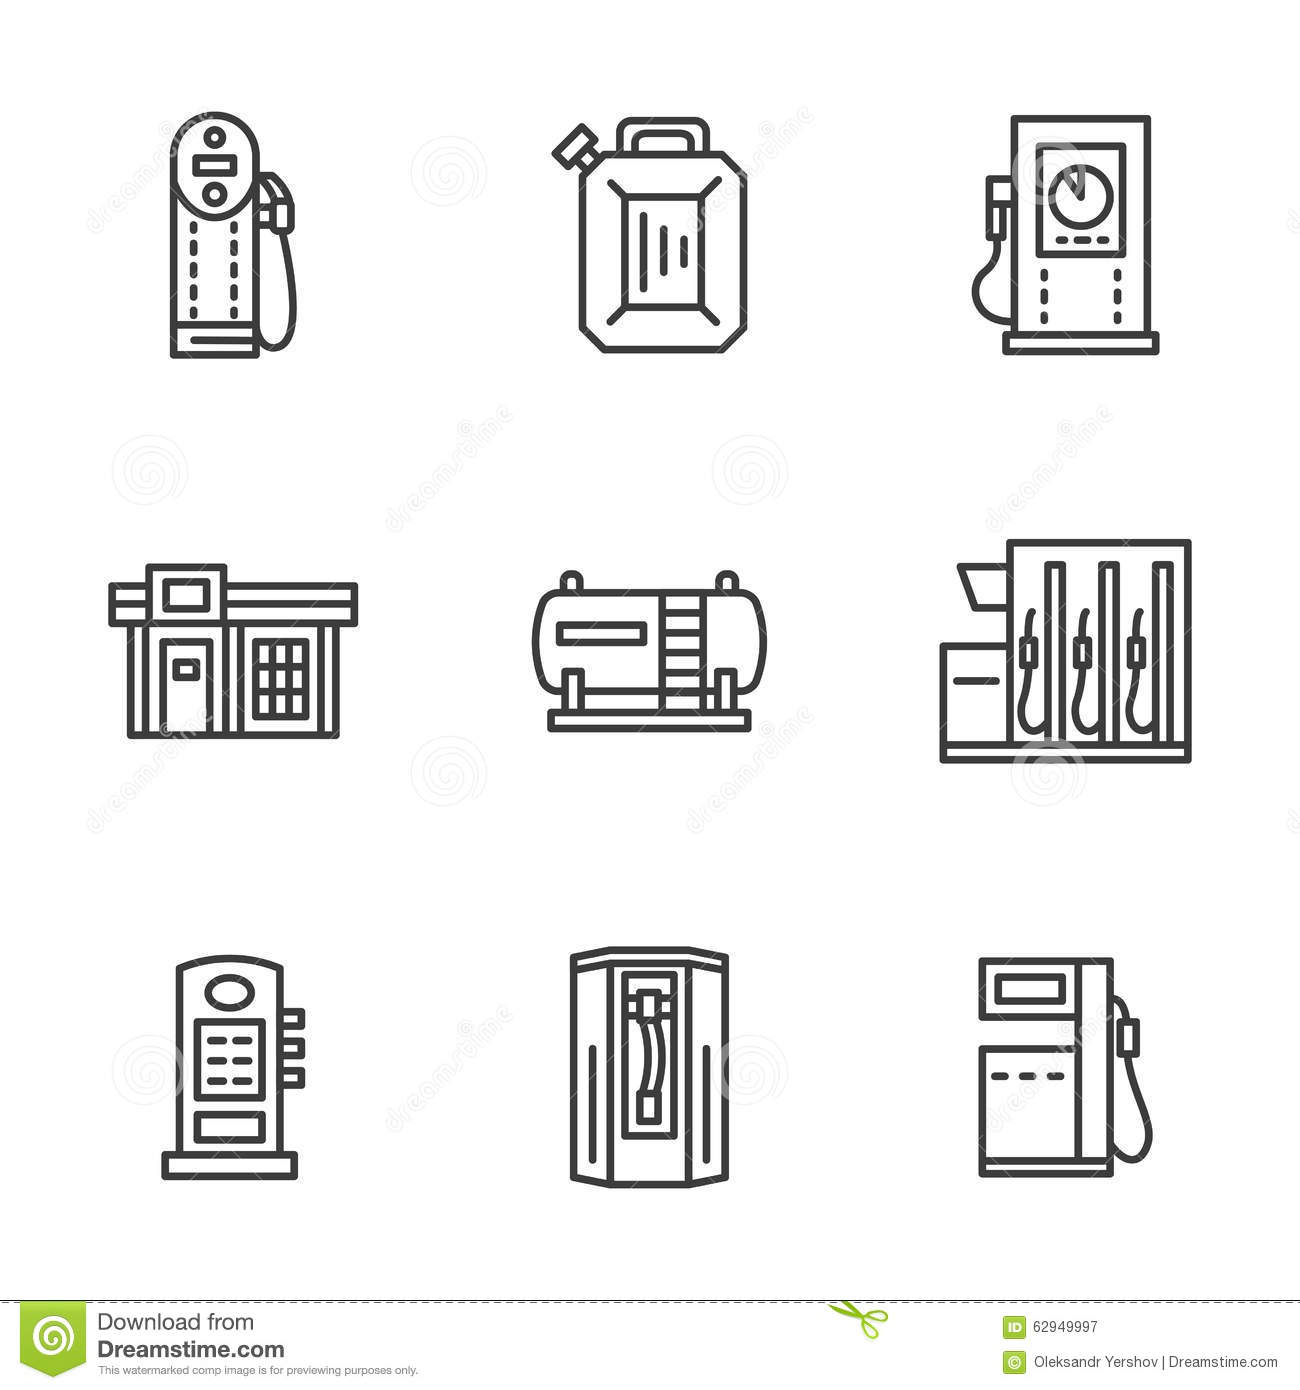 gas station black line icons collection stock illustration